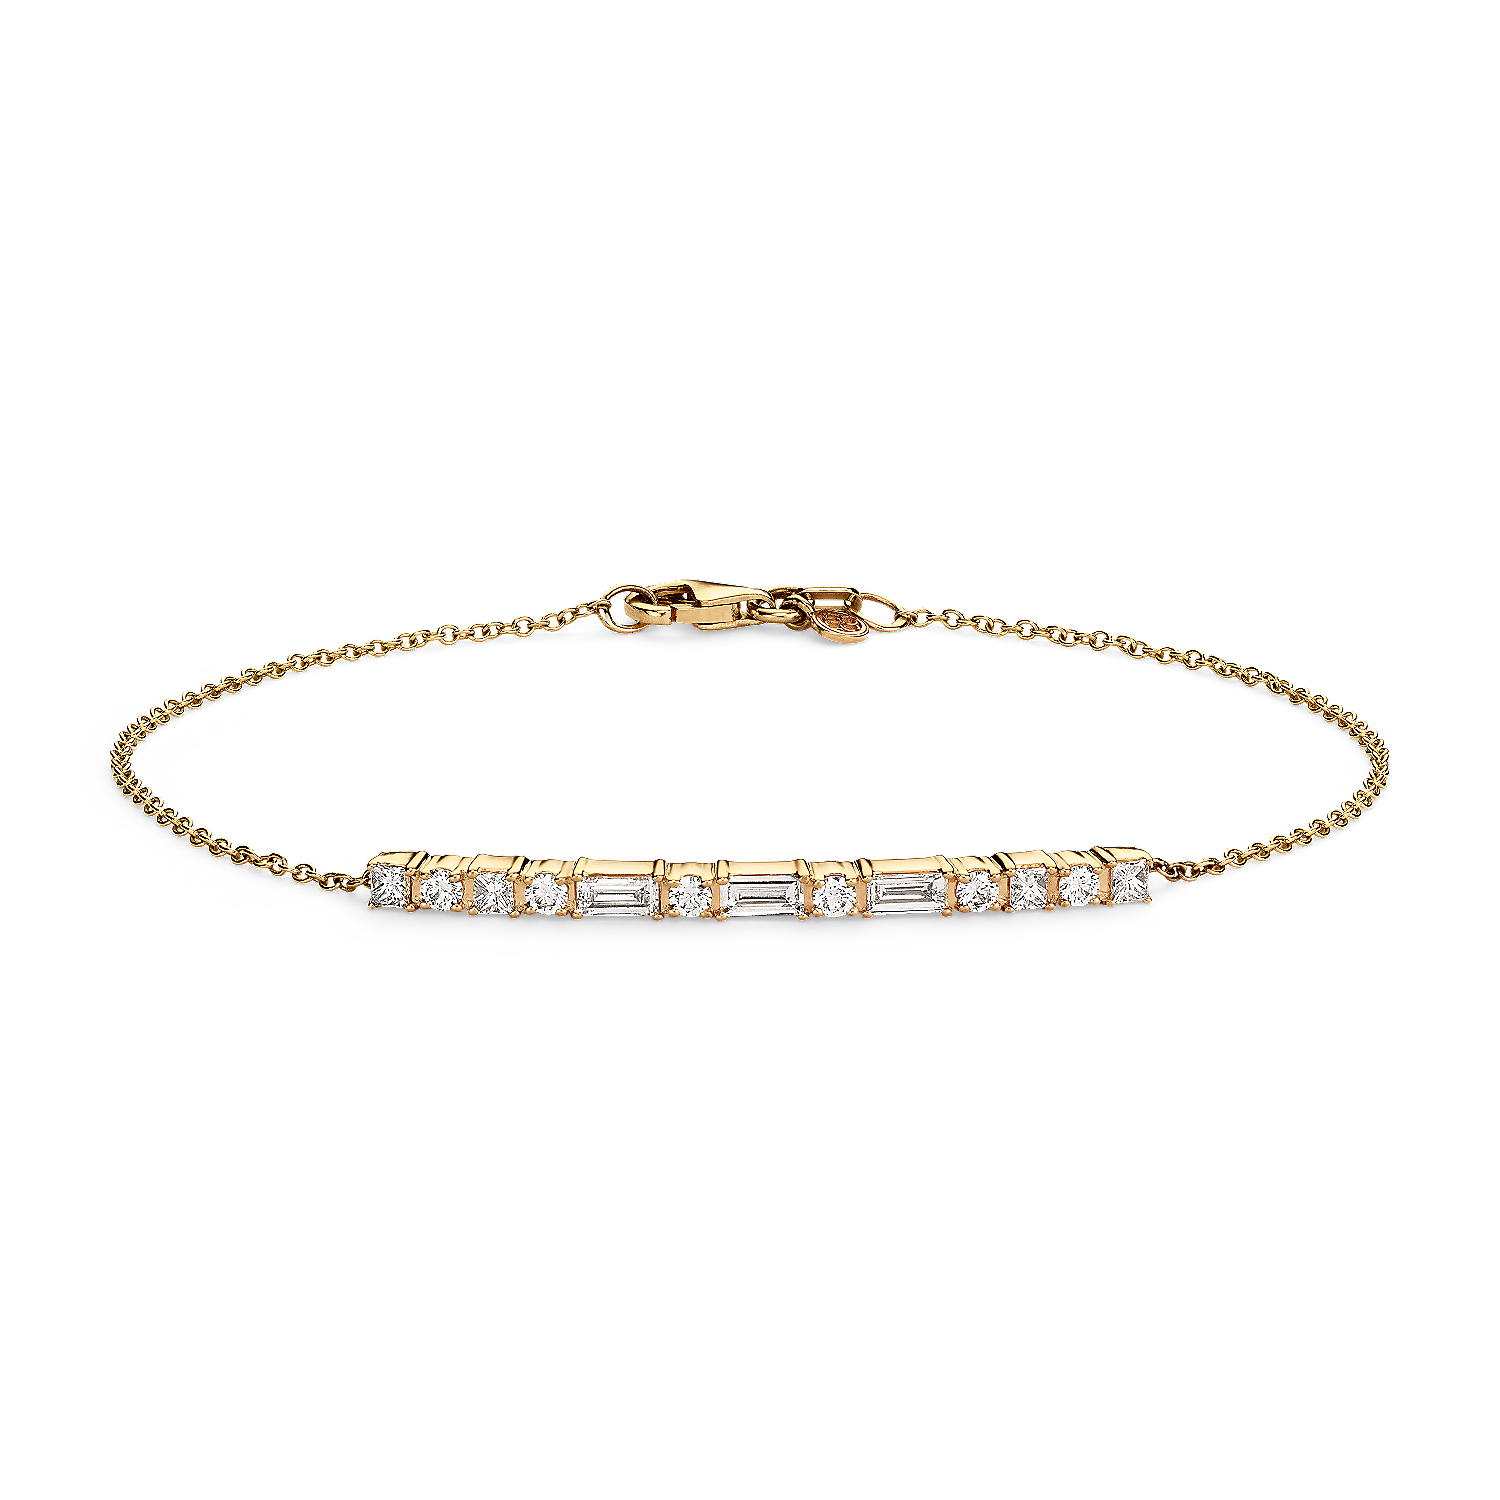 57605_Colin Cowie Dot Dash Bracelet Yellow Gold.jpg